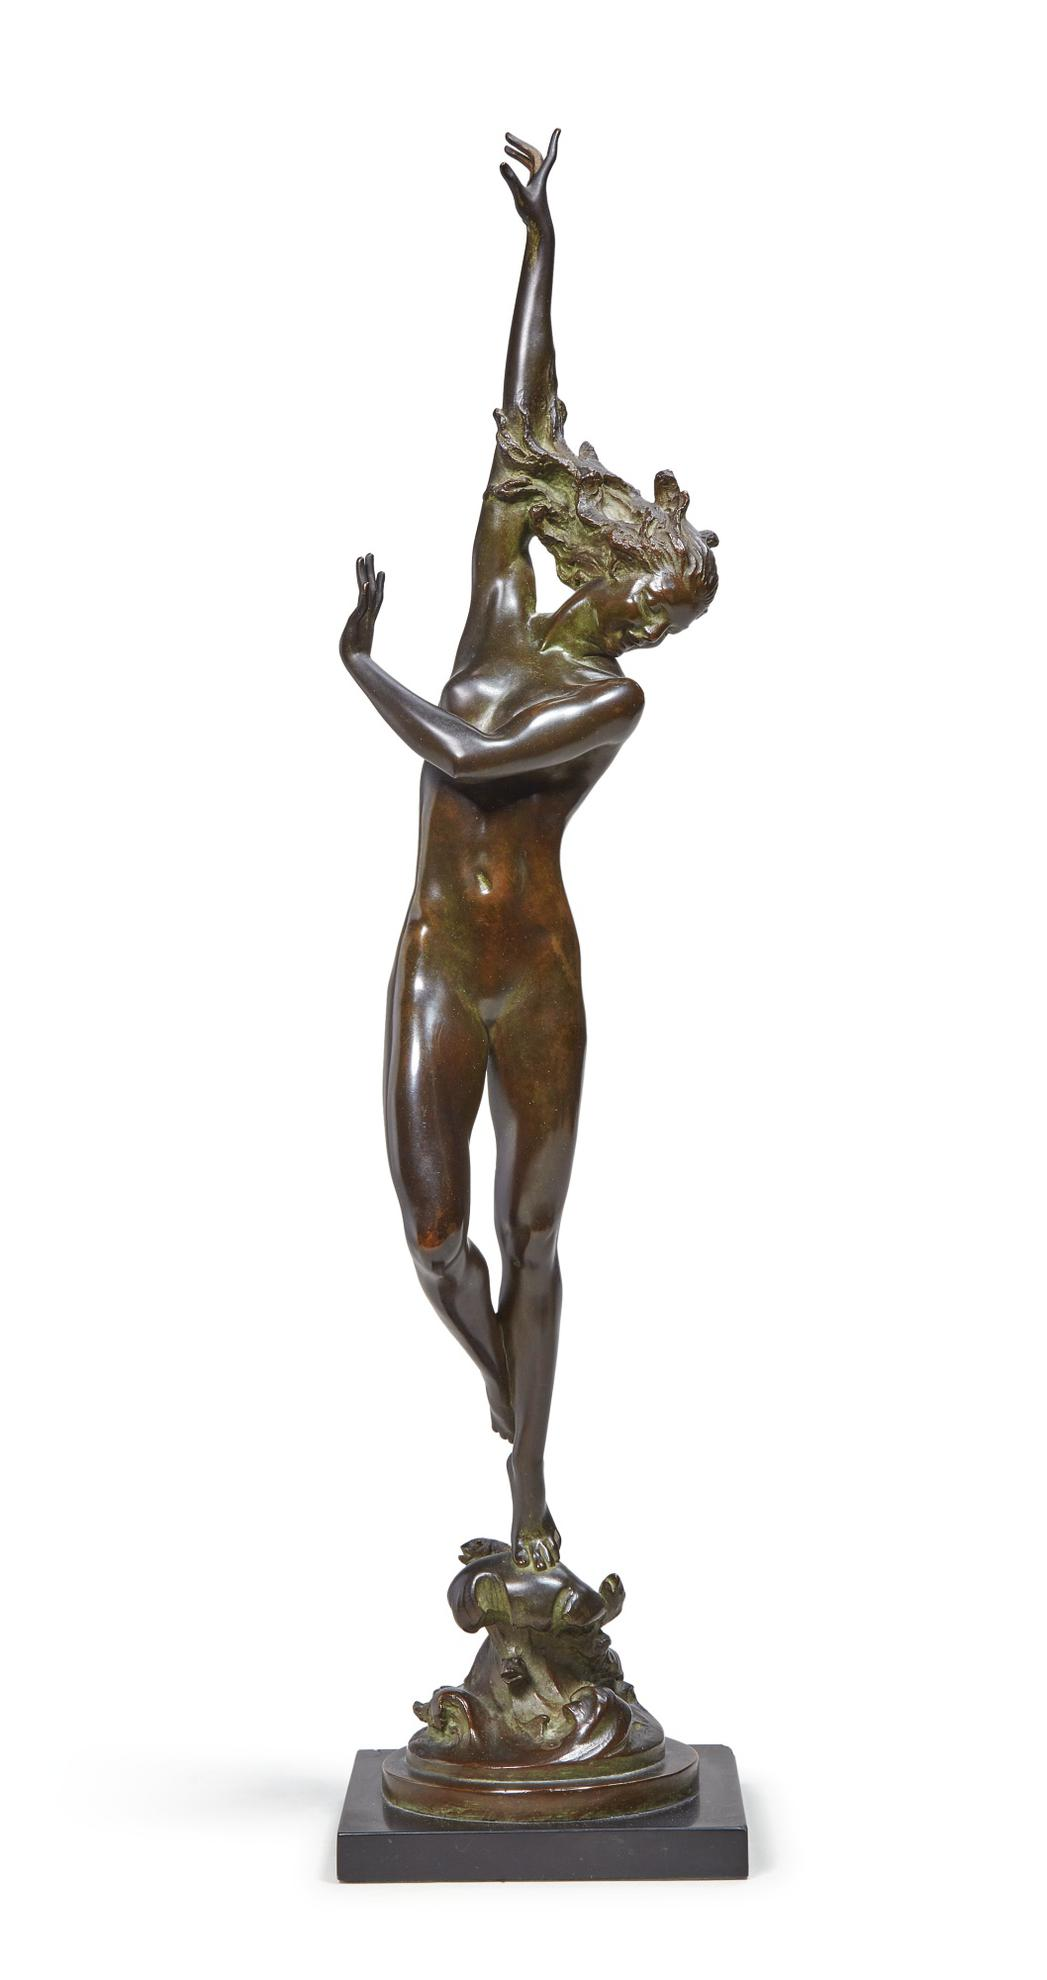 Harriet Whitney Frishmuth - Crest Of The Wave-1925